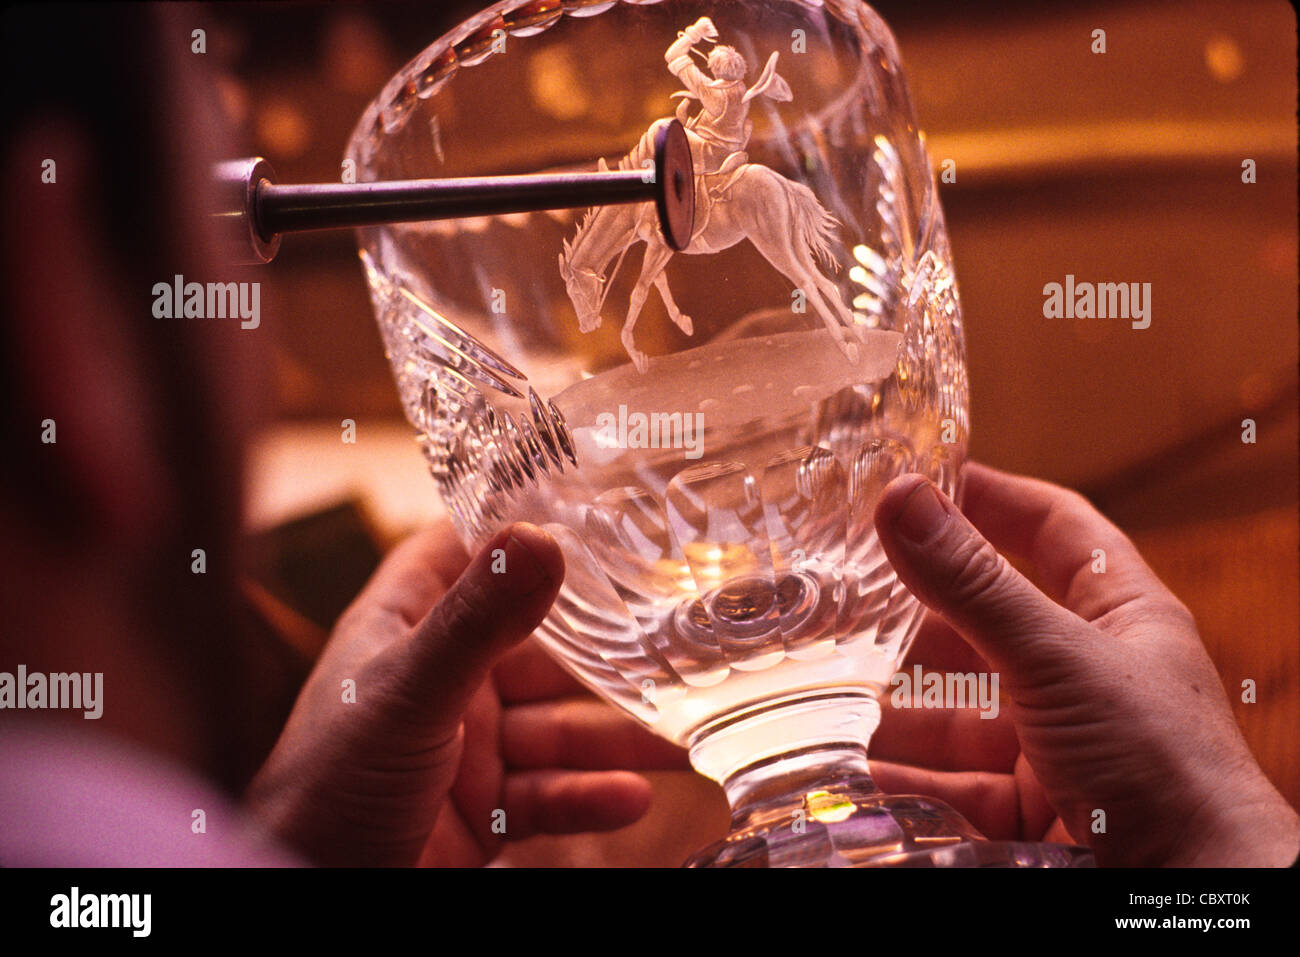 Engraver finishing a western themed crystal vase in Waterford Crystal factory -Waterford, Ireland - Stock Image